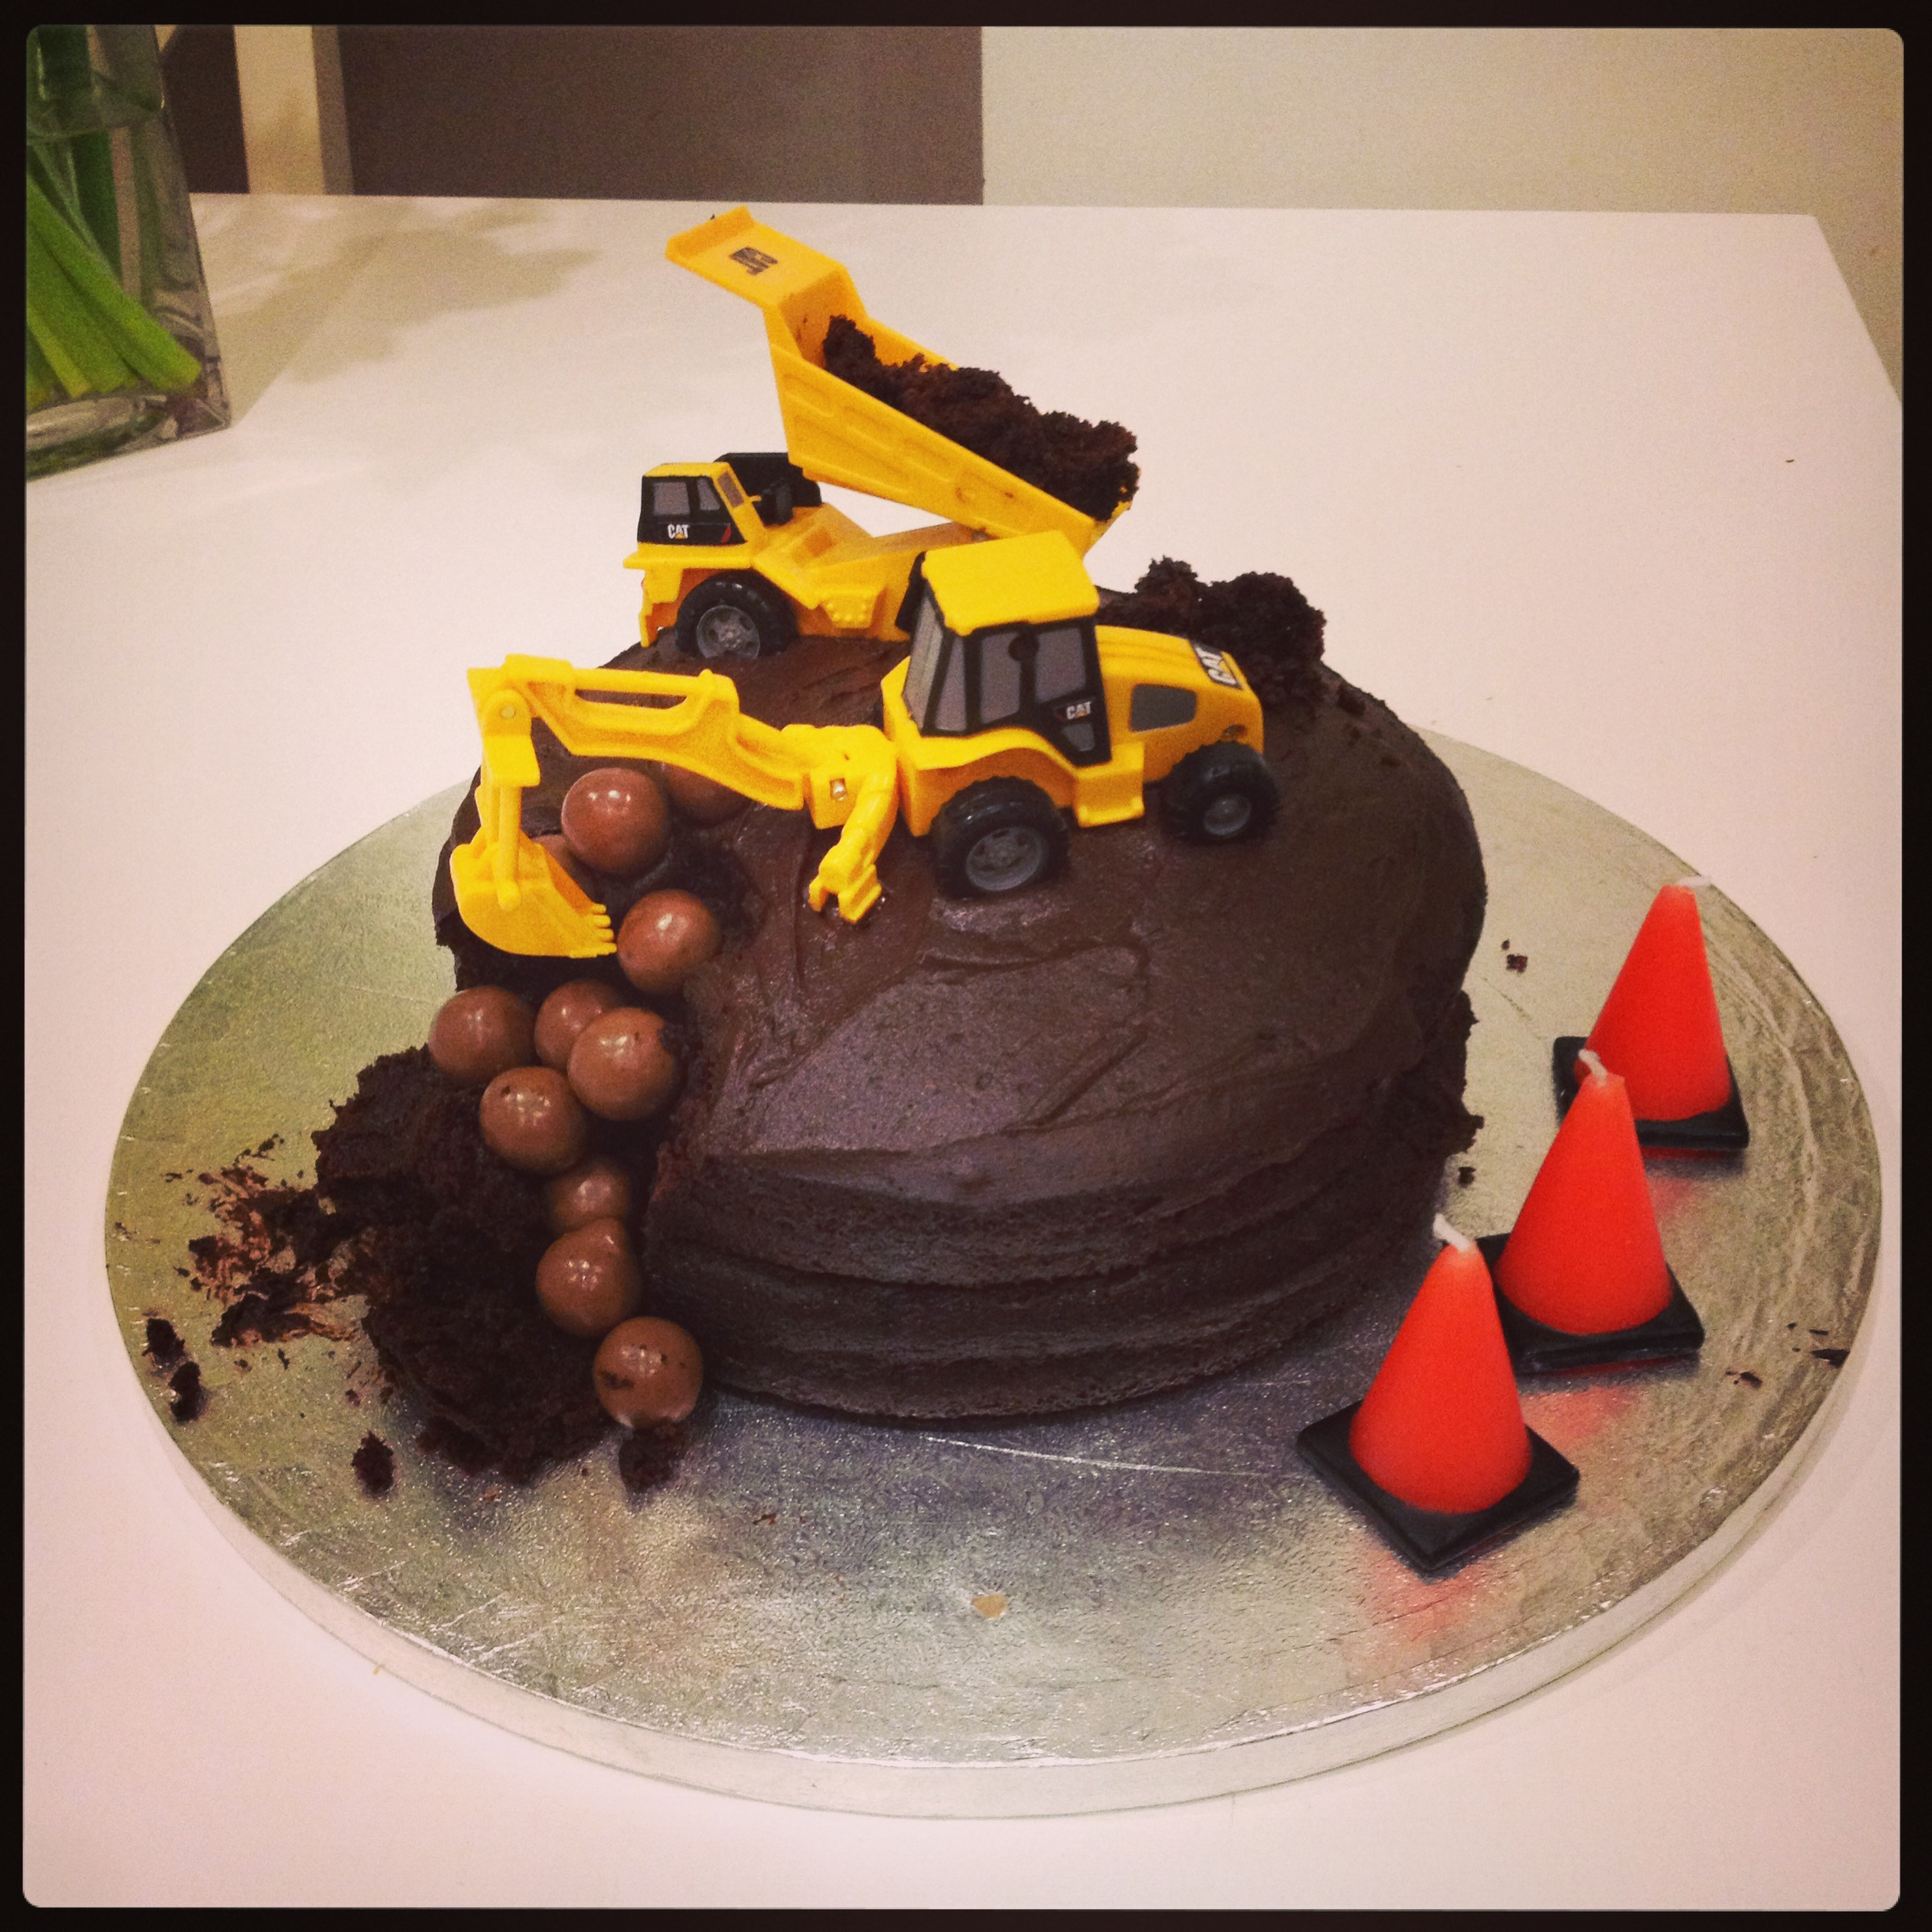 Surprising Easy Digger Birthday Cake The Spirited Puddle Jumper Funny Birthday Cards Online Elaedamsfinfo